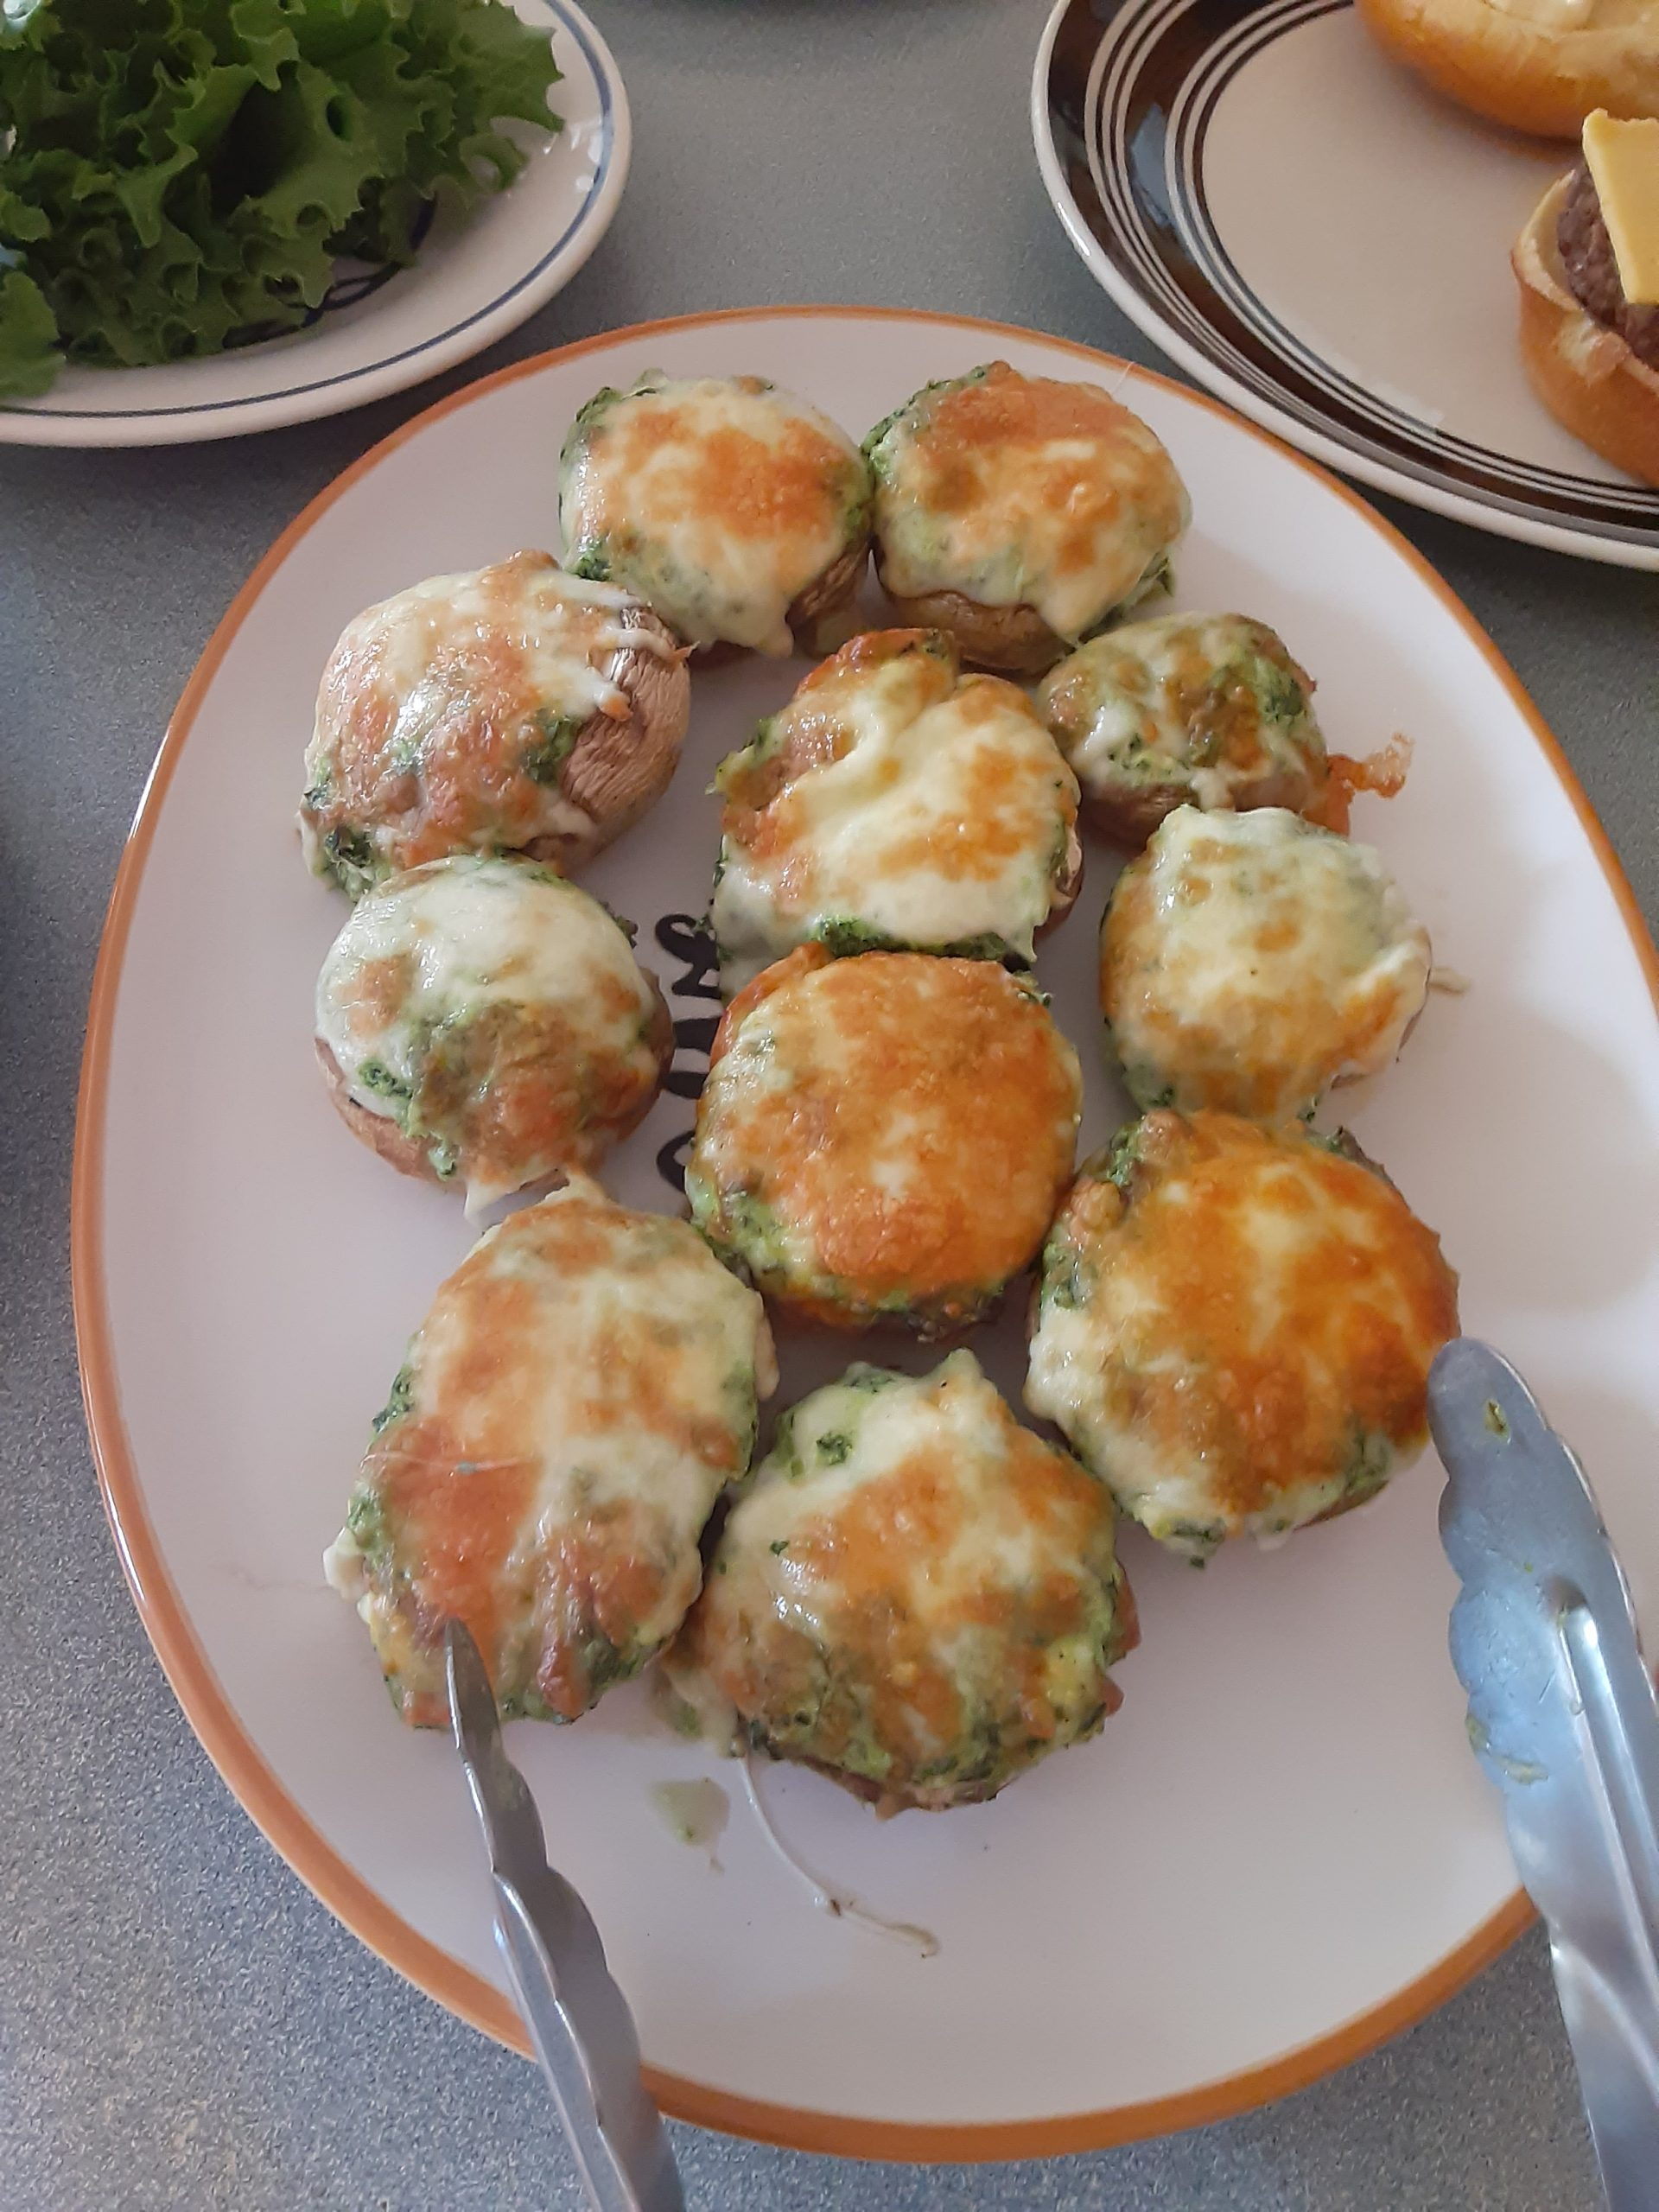 delicious appetizers, platter of stuffed mushrooms